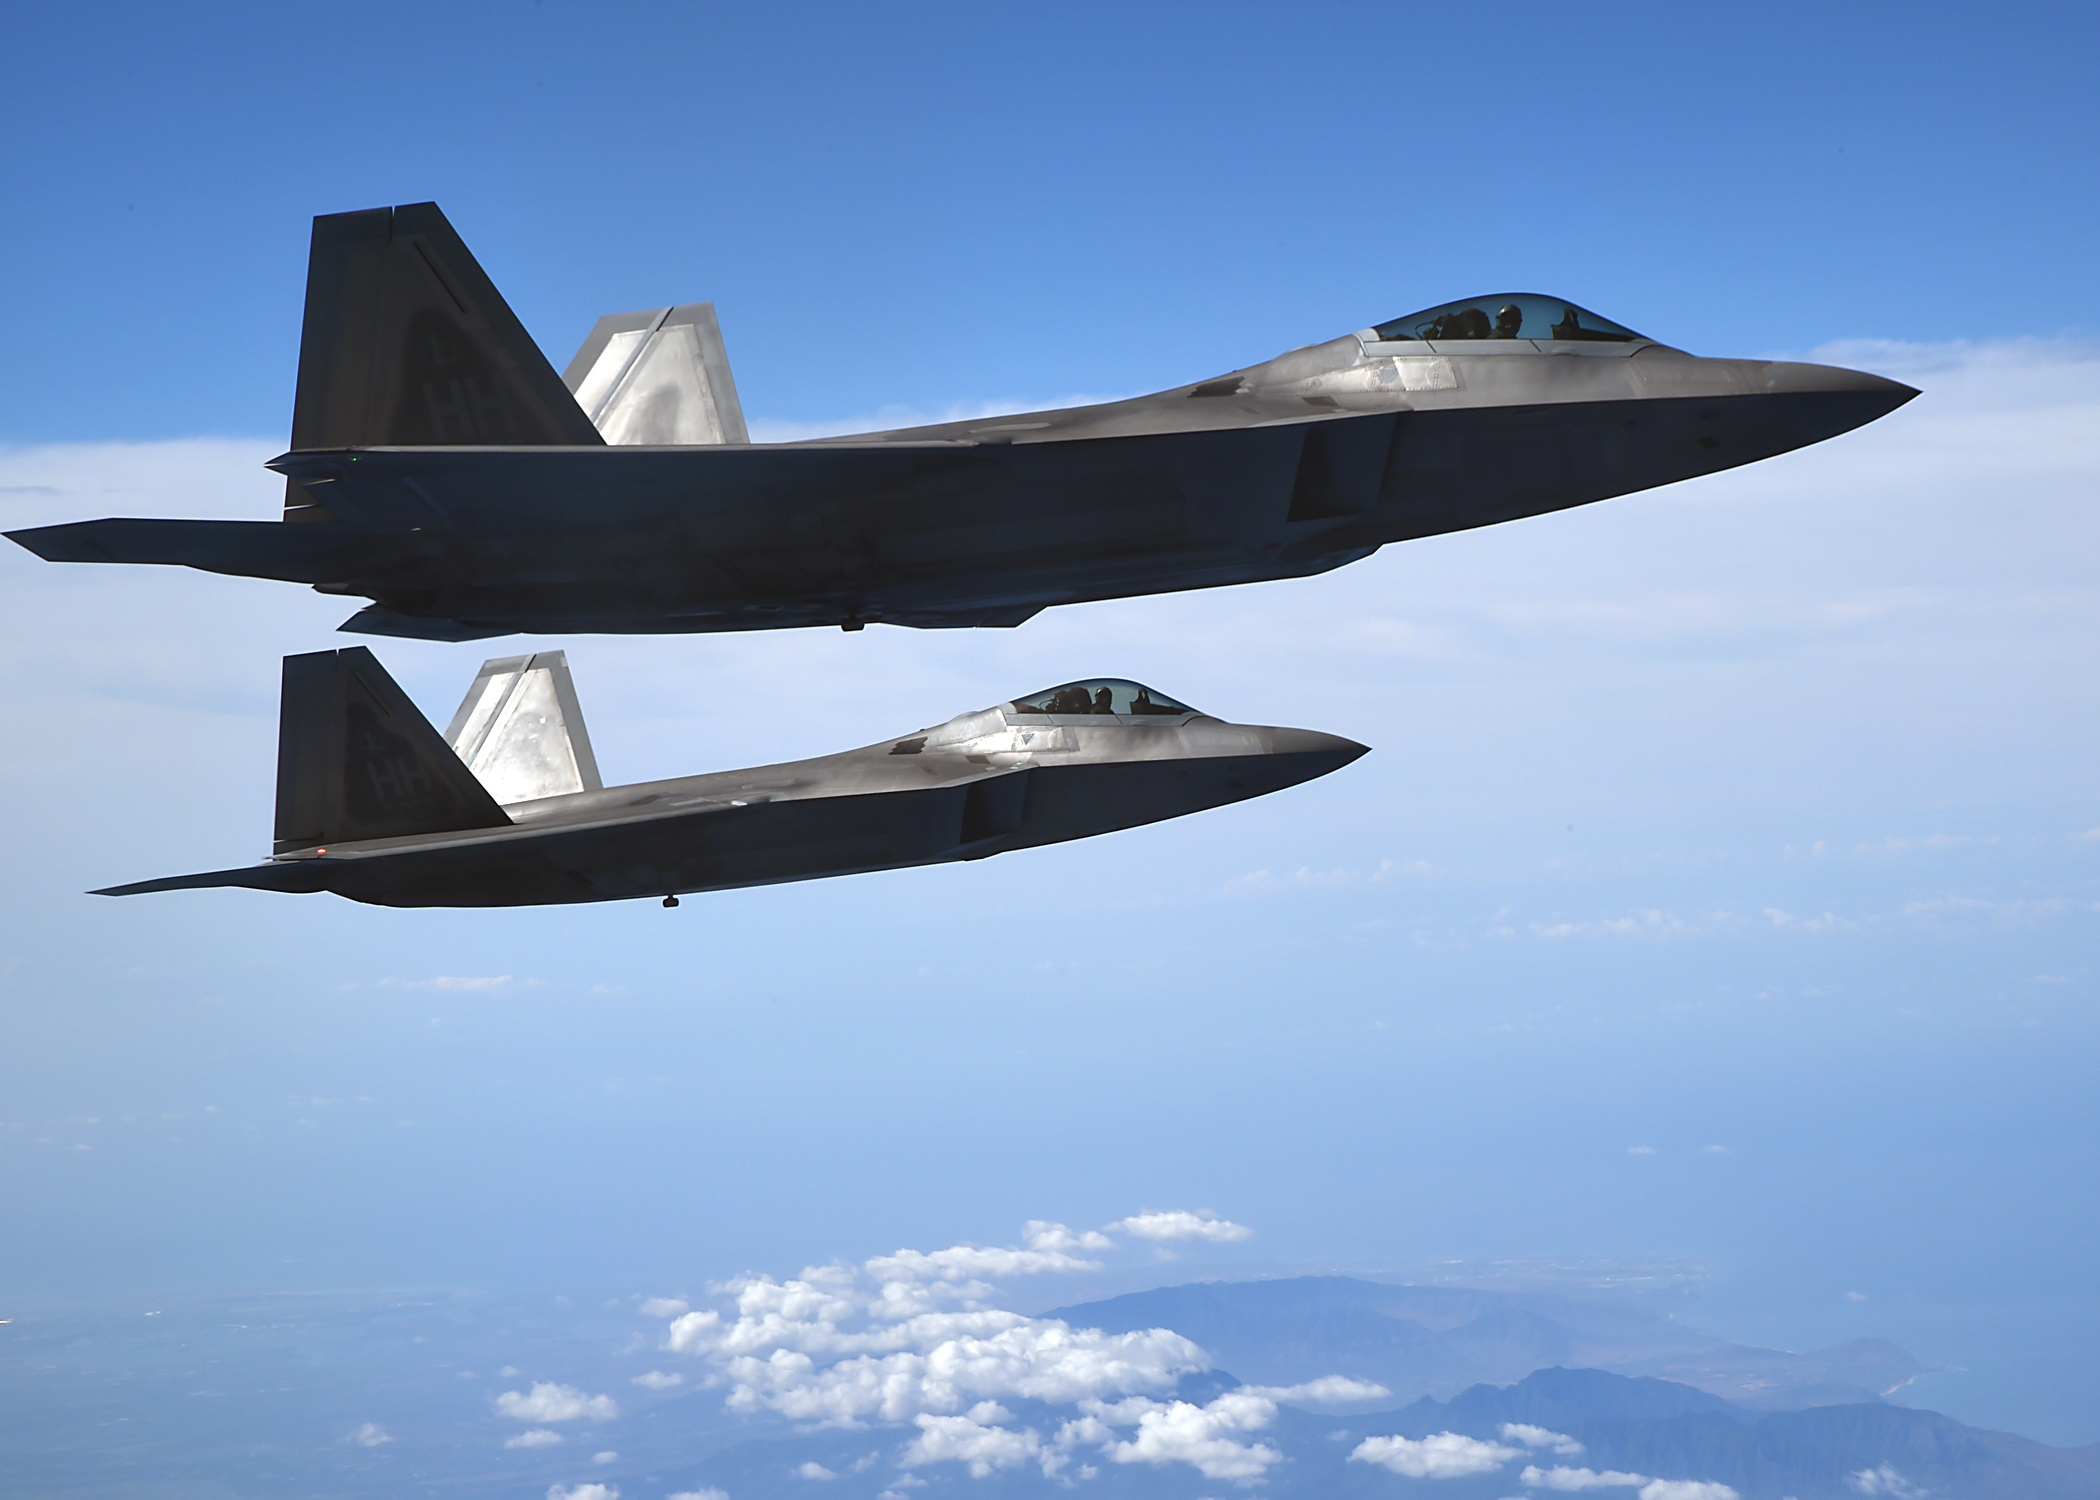 United States Air Force F-22 Raptors, from the Hawaiian Raptors, fly in formation above the island of Oahu, Hawaii, May 19, 2015. The F-22 pilots conducted aerial refueling operations with the 96th Air Refueling Squadron's KC-135R Stratotanker. The F-22 Raptor is a fighter aircraft that combines stealth, supercruise, maneuverability, and integrated avionics, coupled with improved supportability, to represent an exponential leap in warfighting capabilities. (U.S. Air Force photo by Tech. Sgt. Aaron Oelrich/Released)